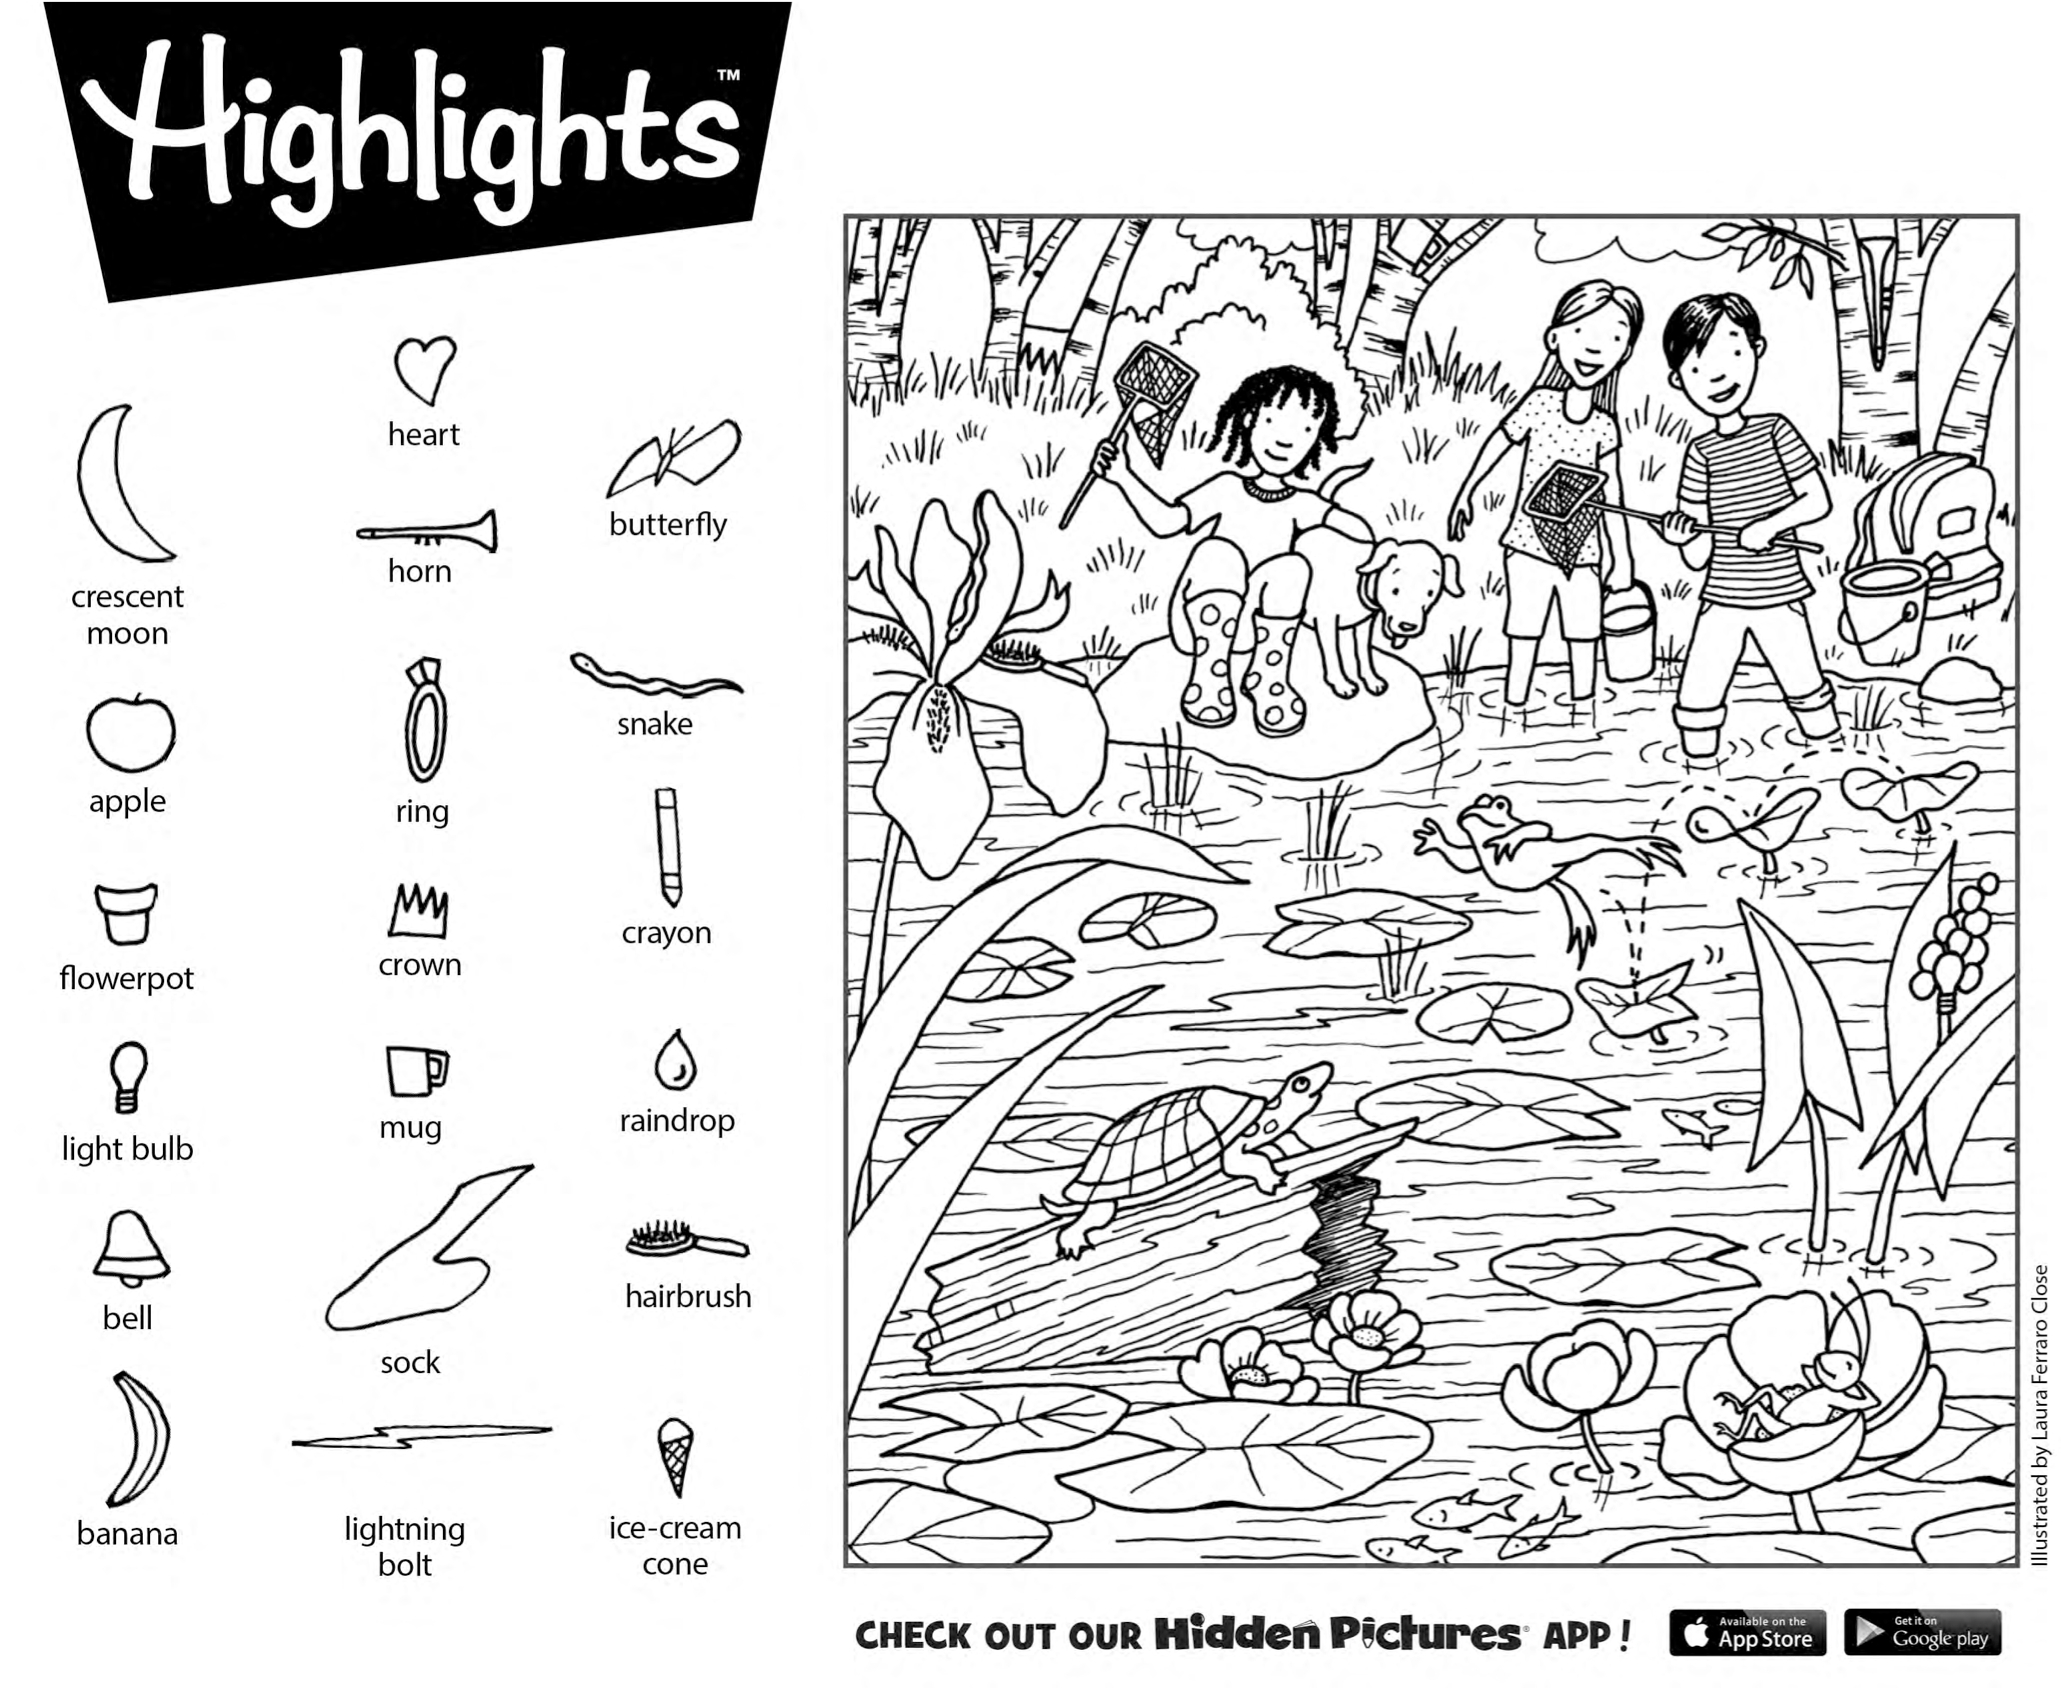 Download This Free Printable Hidden Pictures Puzzle From - Printable Hidden Puzzles